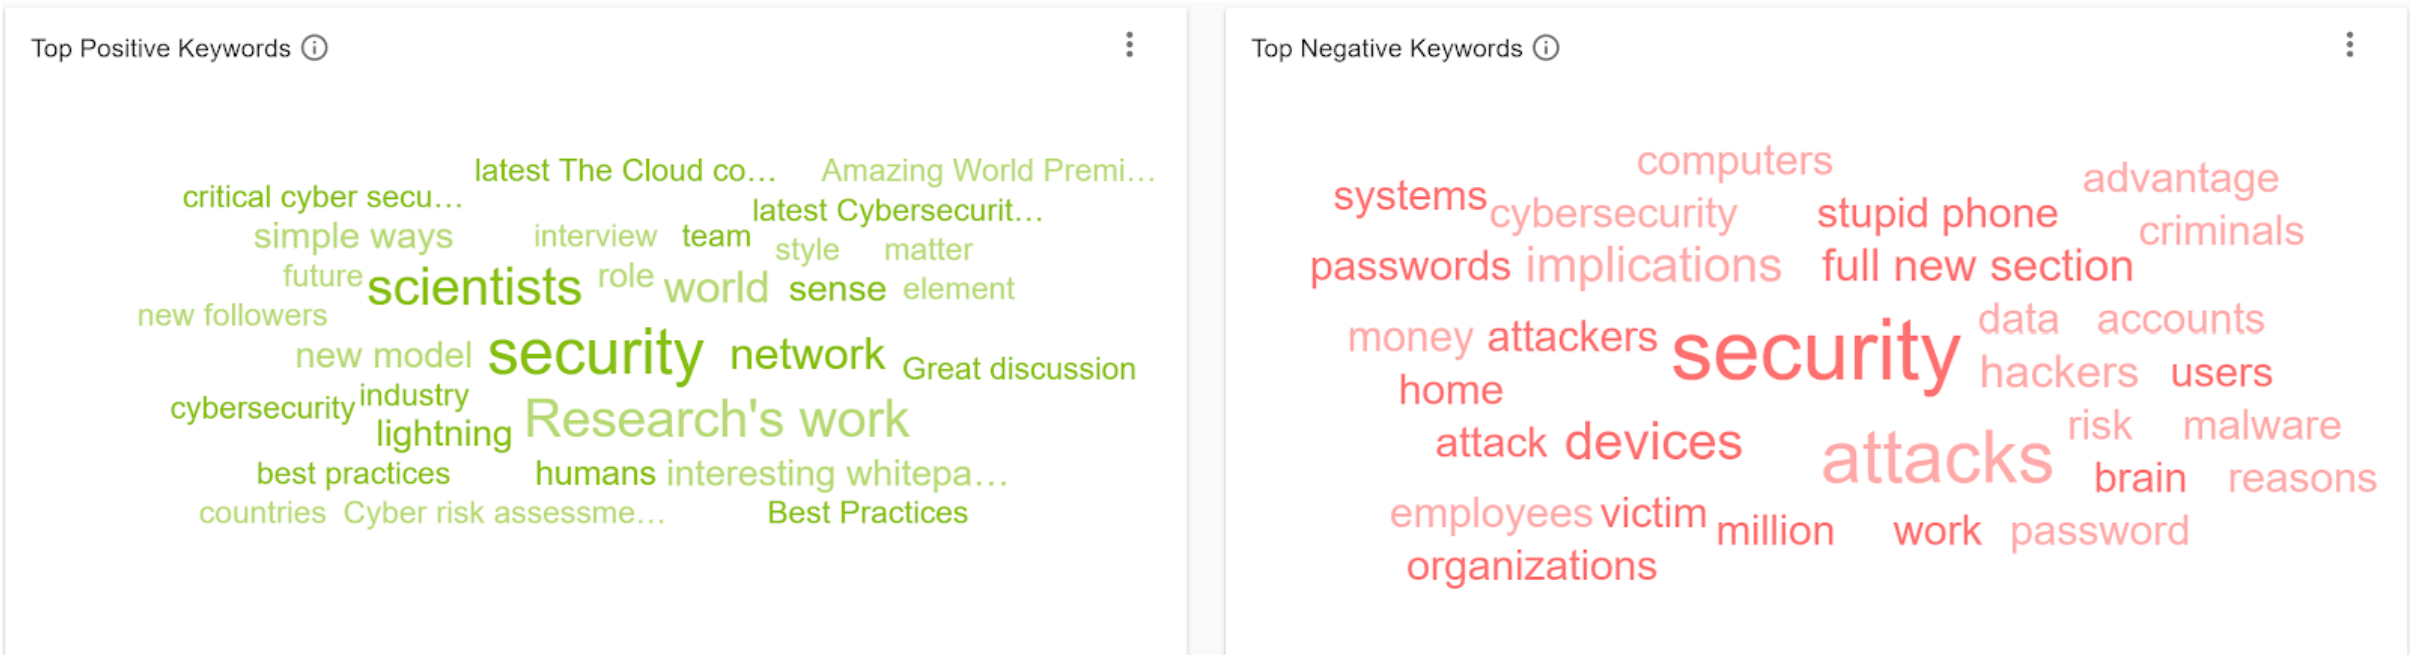 8 Positive Negative Social Listening IOT - Cybersecurity Keywords